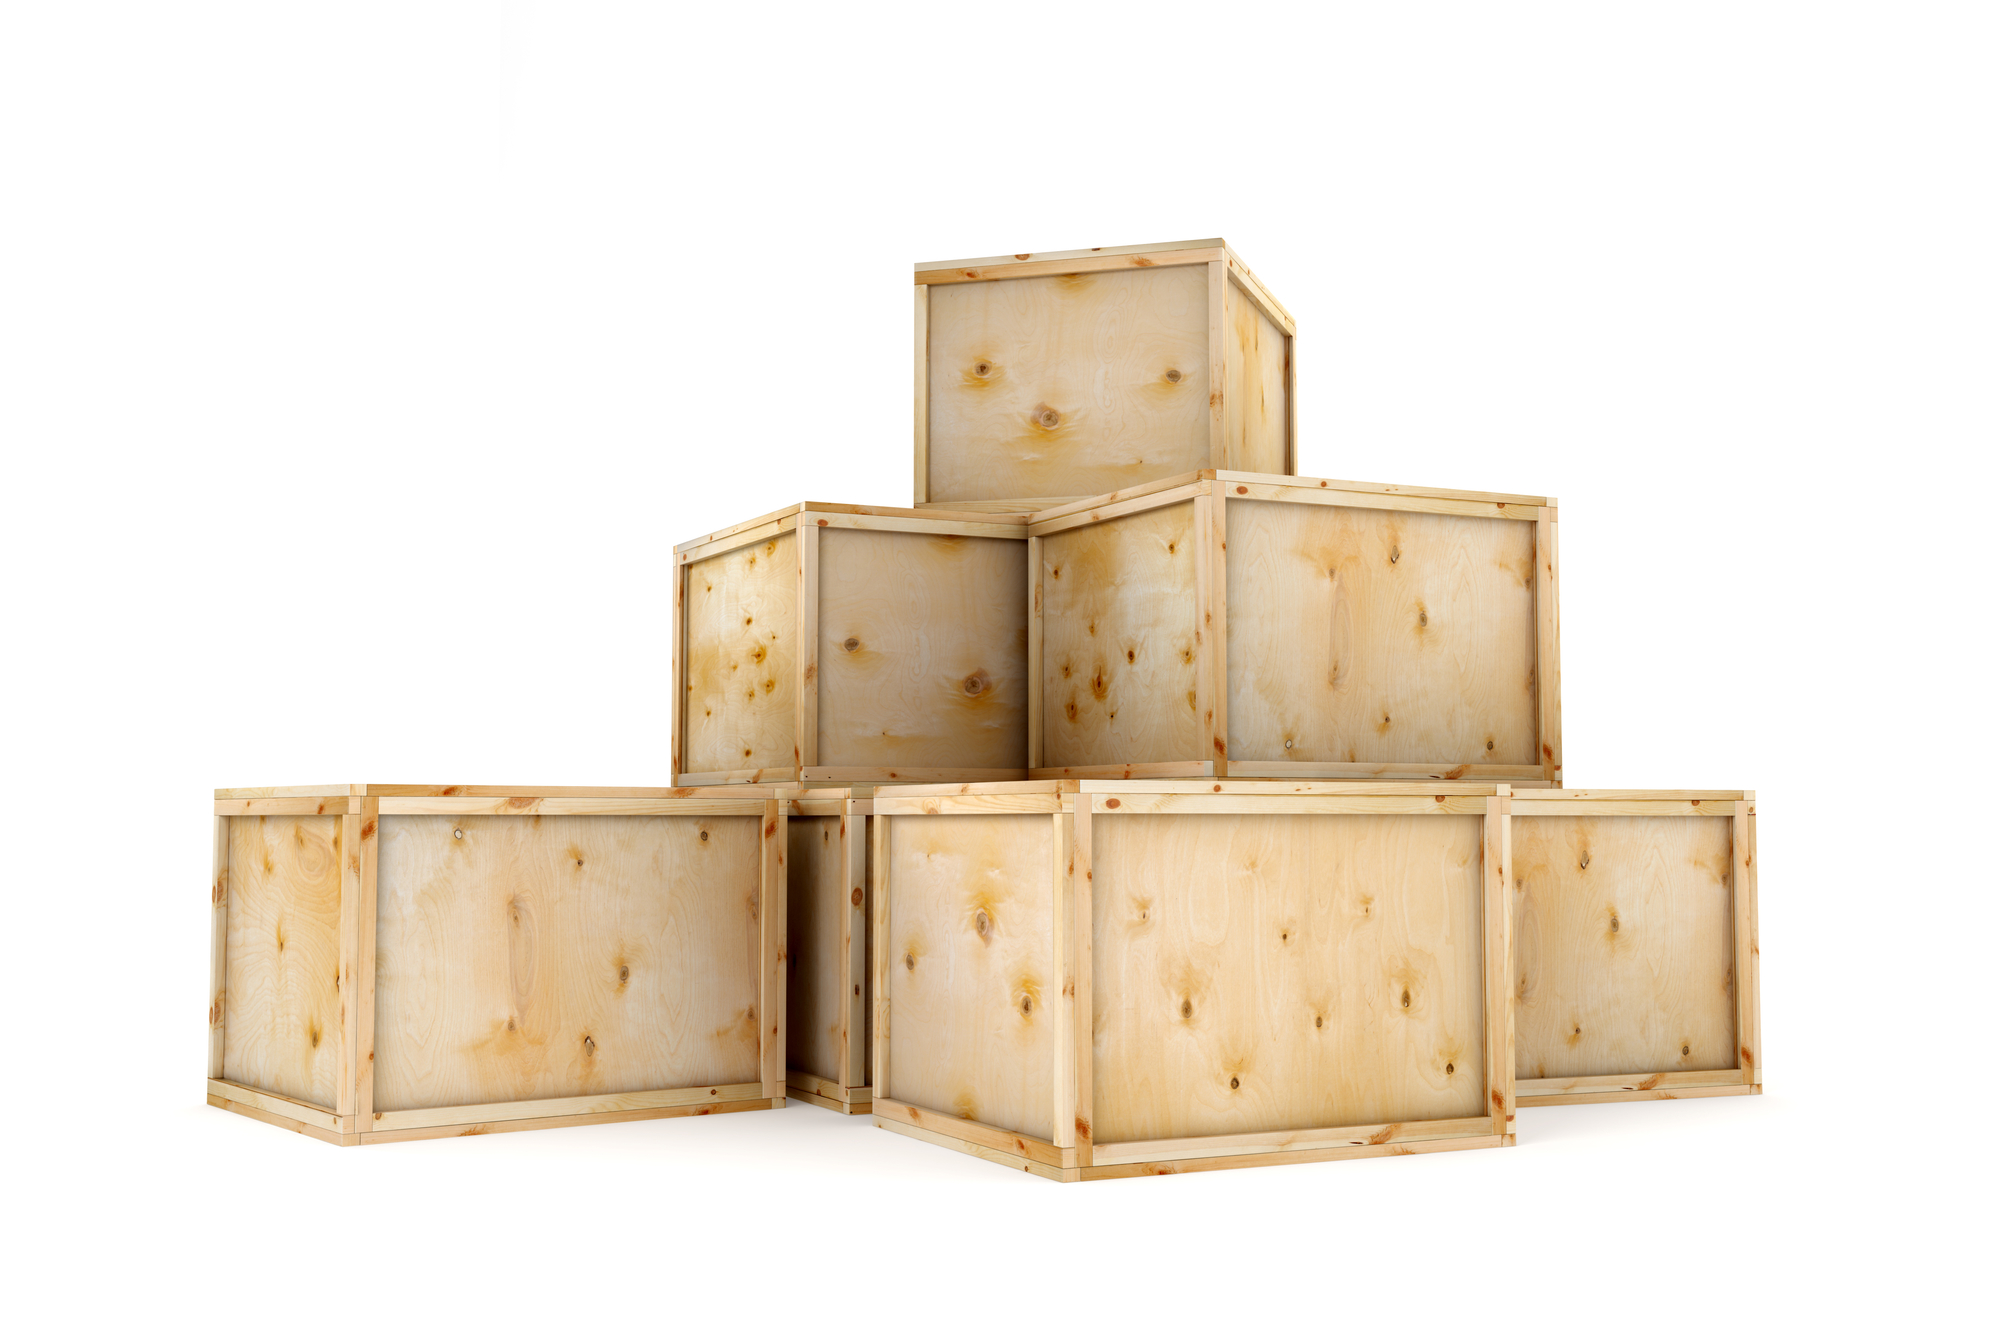 Ship Wooden crates